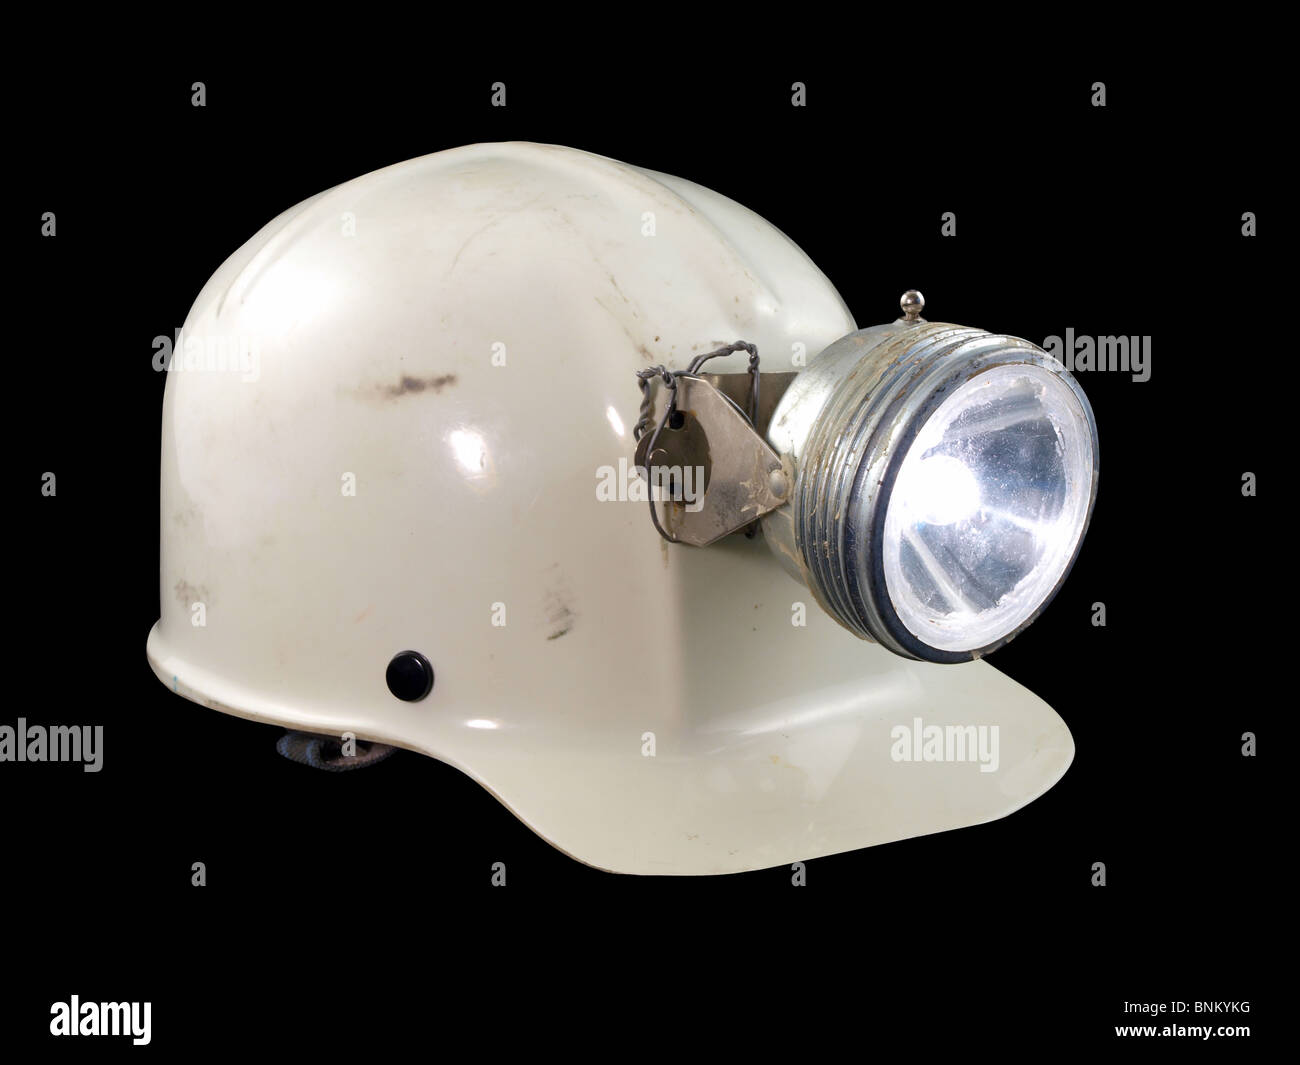 Vintage caving / mining hard hat from the 1970's. - Stock Image